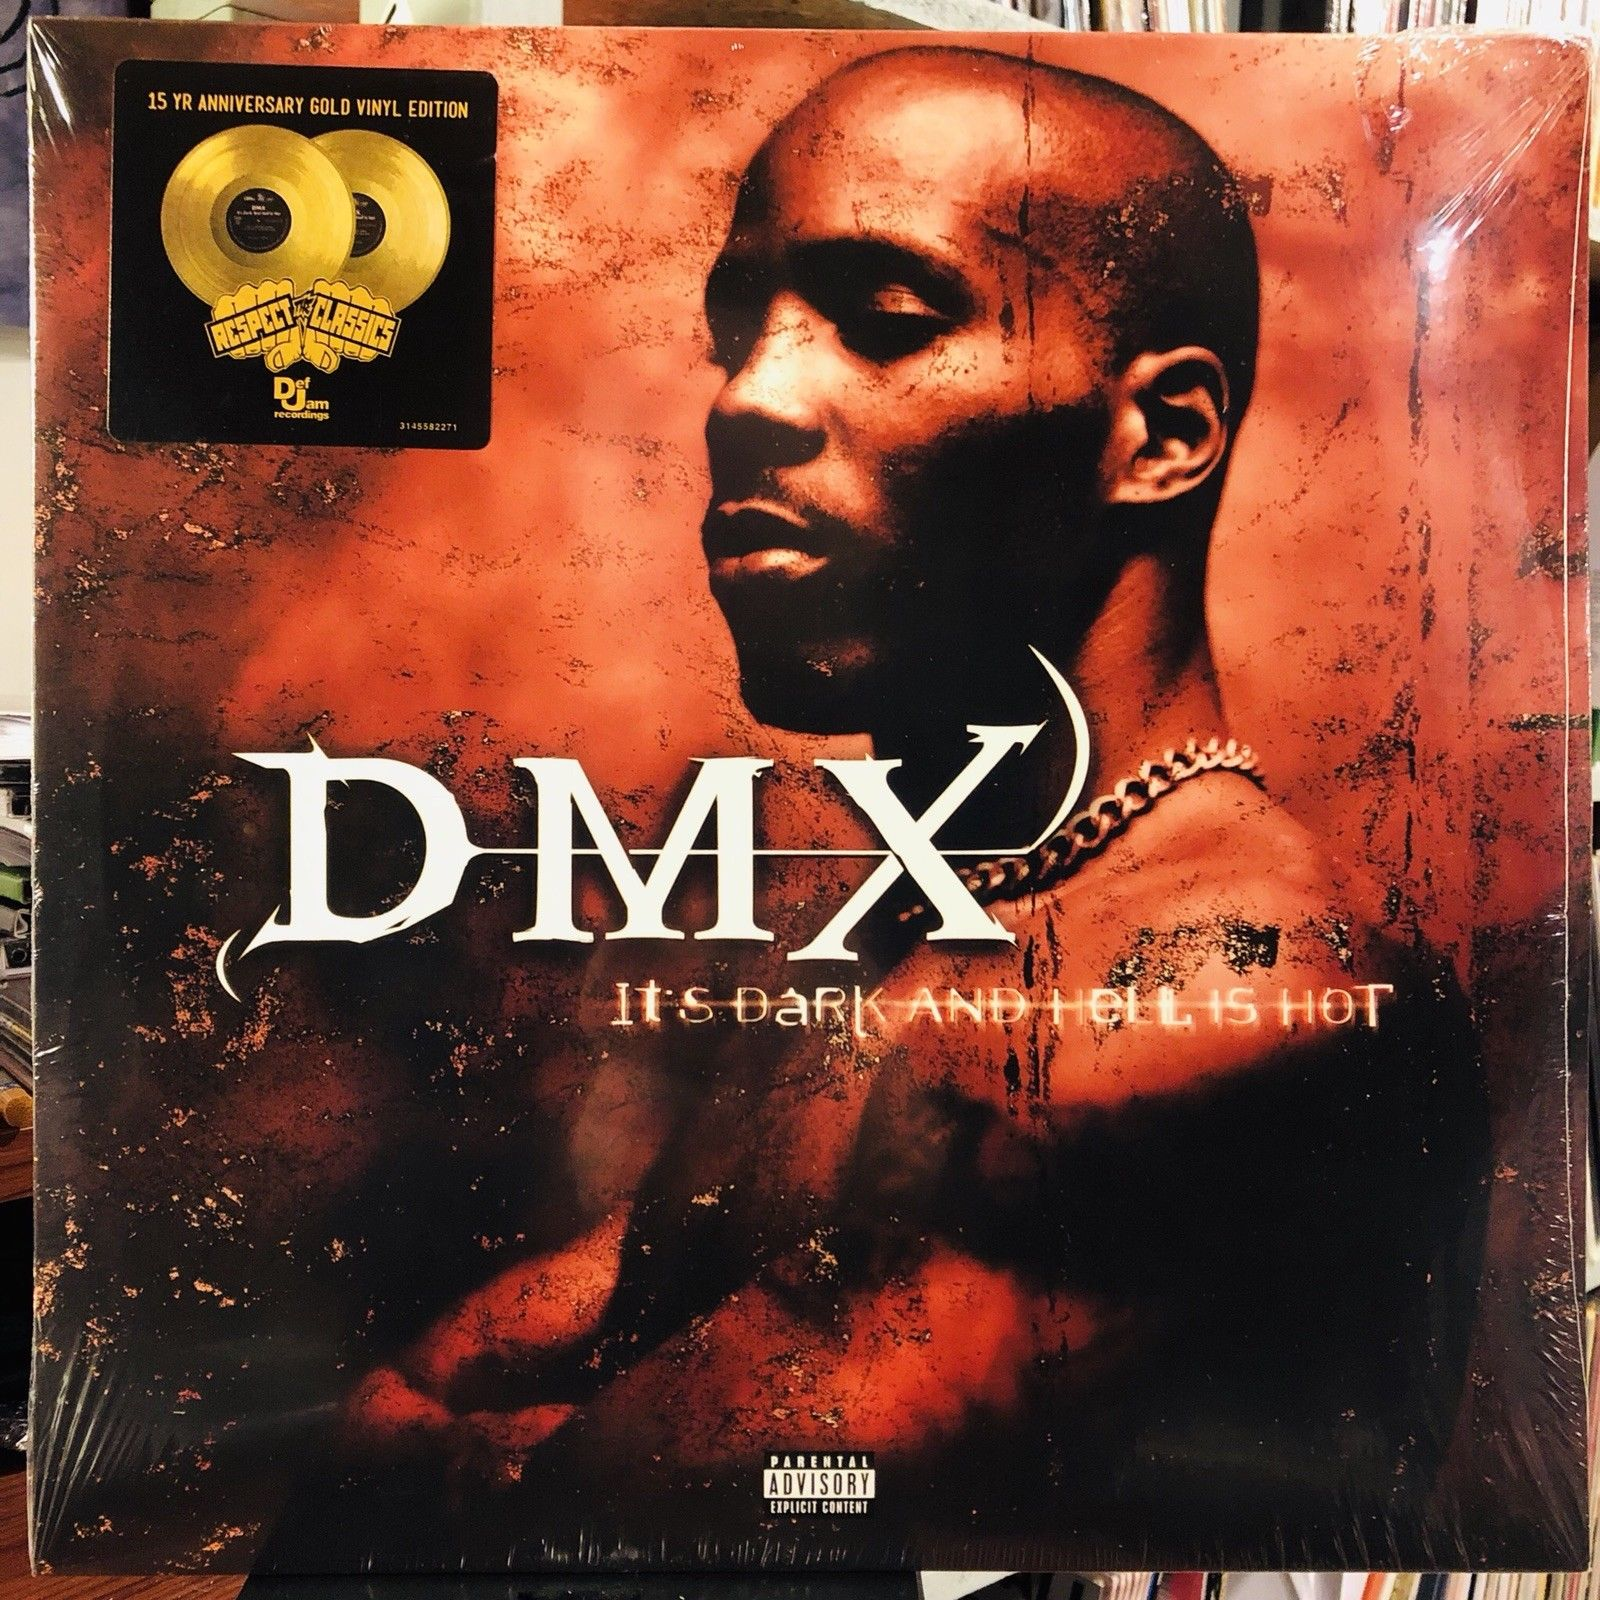 DMX ‎– It's Dark And Hell Is Hot : Ruff Ryders ‎– 314 558 227-1, Ruff Ryders ‎– 3145582271, Def Jam Recordings ‎– 3145582271, UMe ‎– 3145582271 Series: Respect The Classics – : 2 × Vinyl, LP, Album, Reissue, Gold